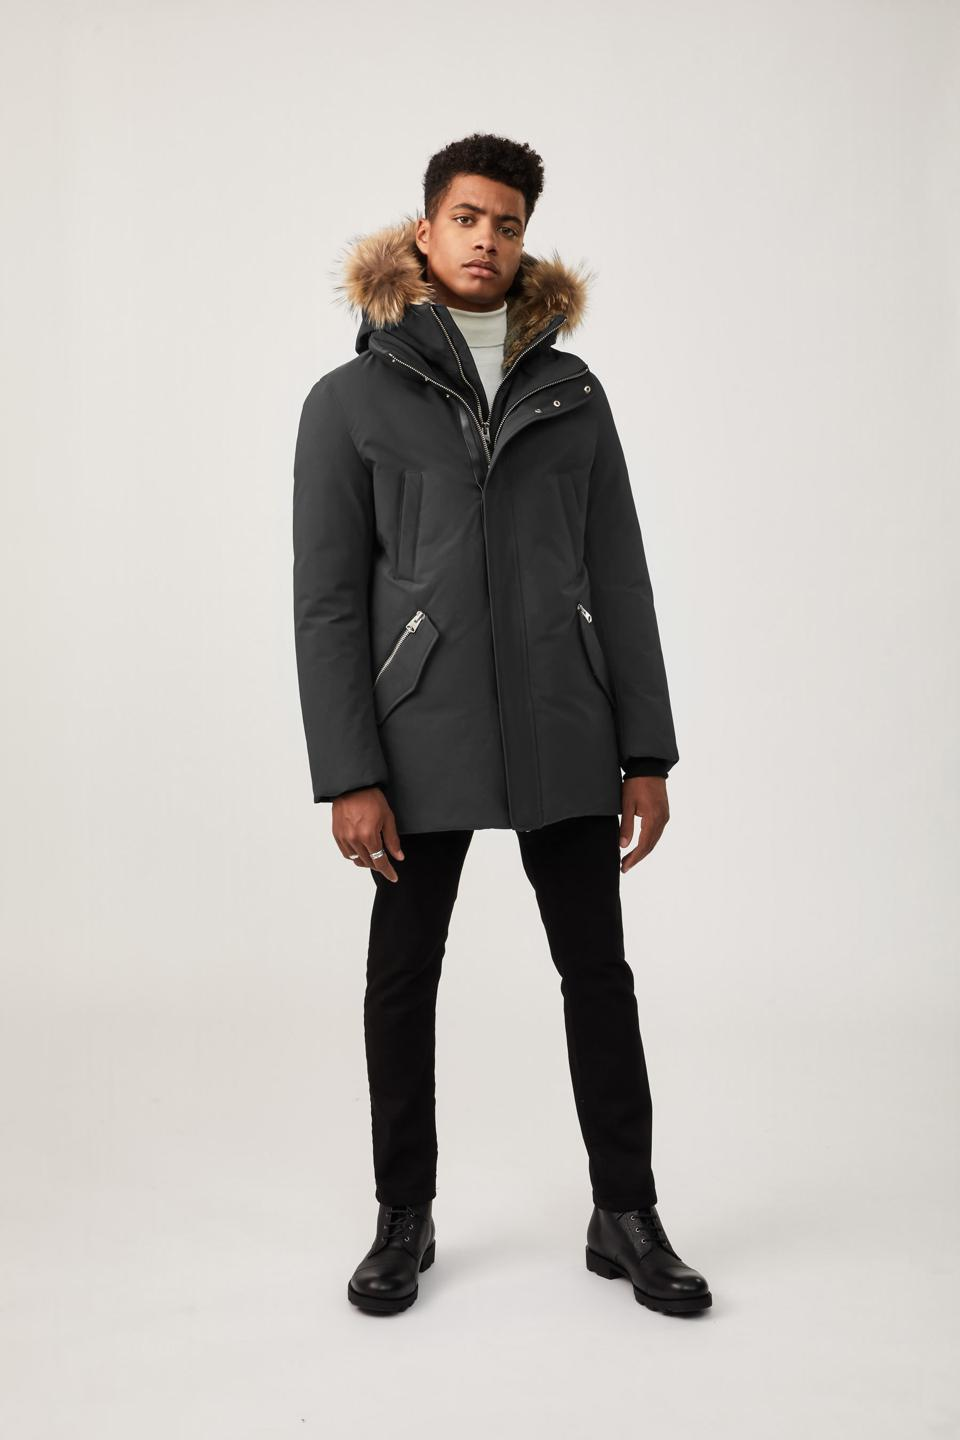 Nordic Tech down coat designed to be windproof, water-repellent and breathable, it features storm cuffs, a removable hooded bib, and a removable natural fur trim around the hood.